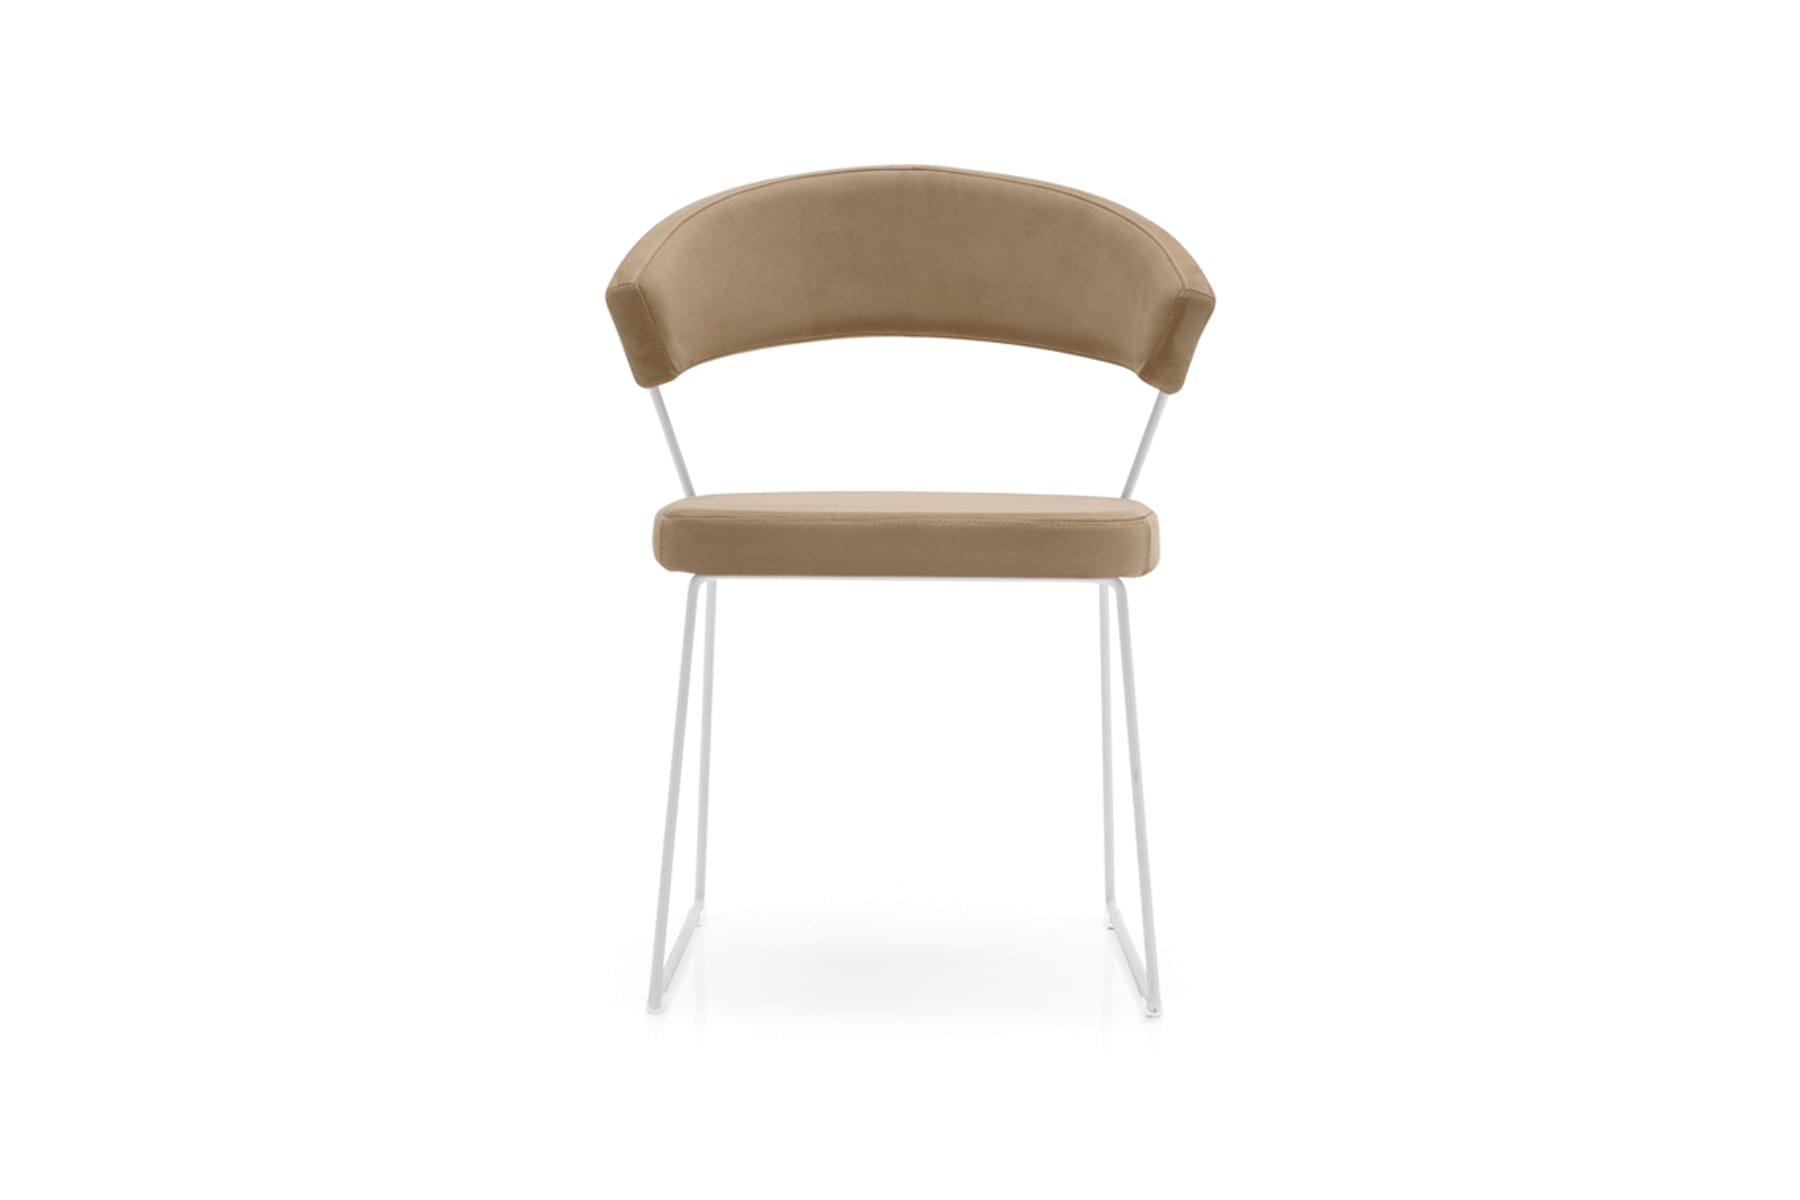 Chaise New York Calligaris Calligaris Chaise Bess Side Chair By Calligaris Claire